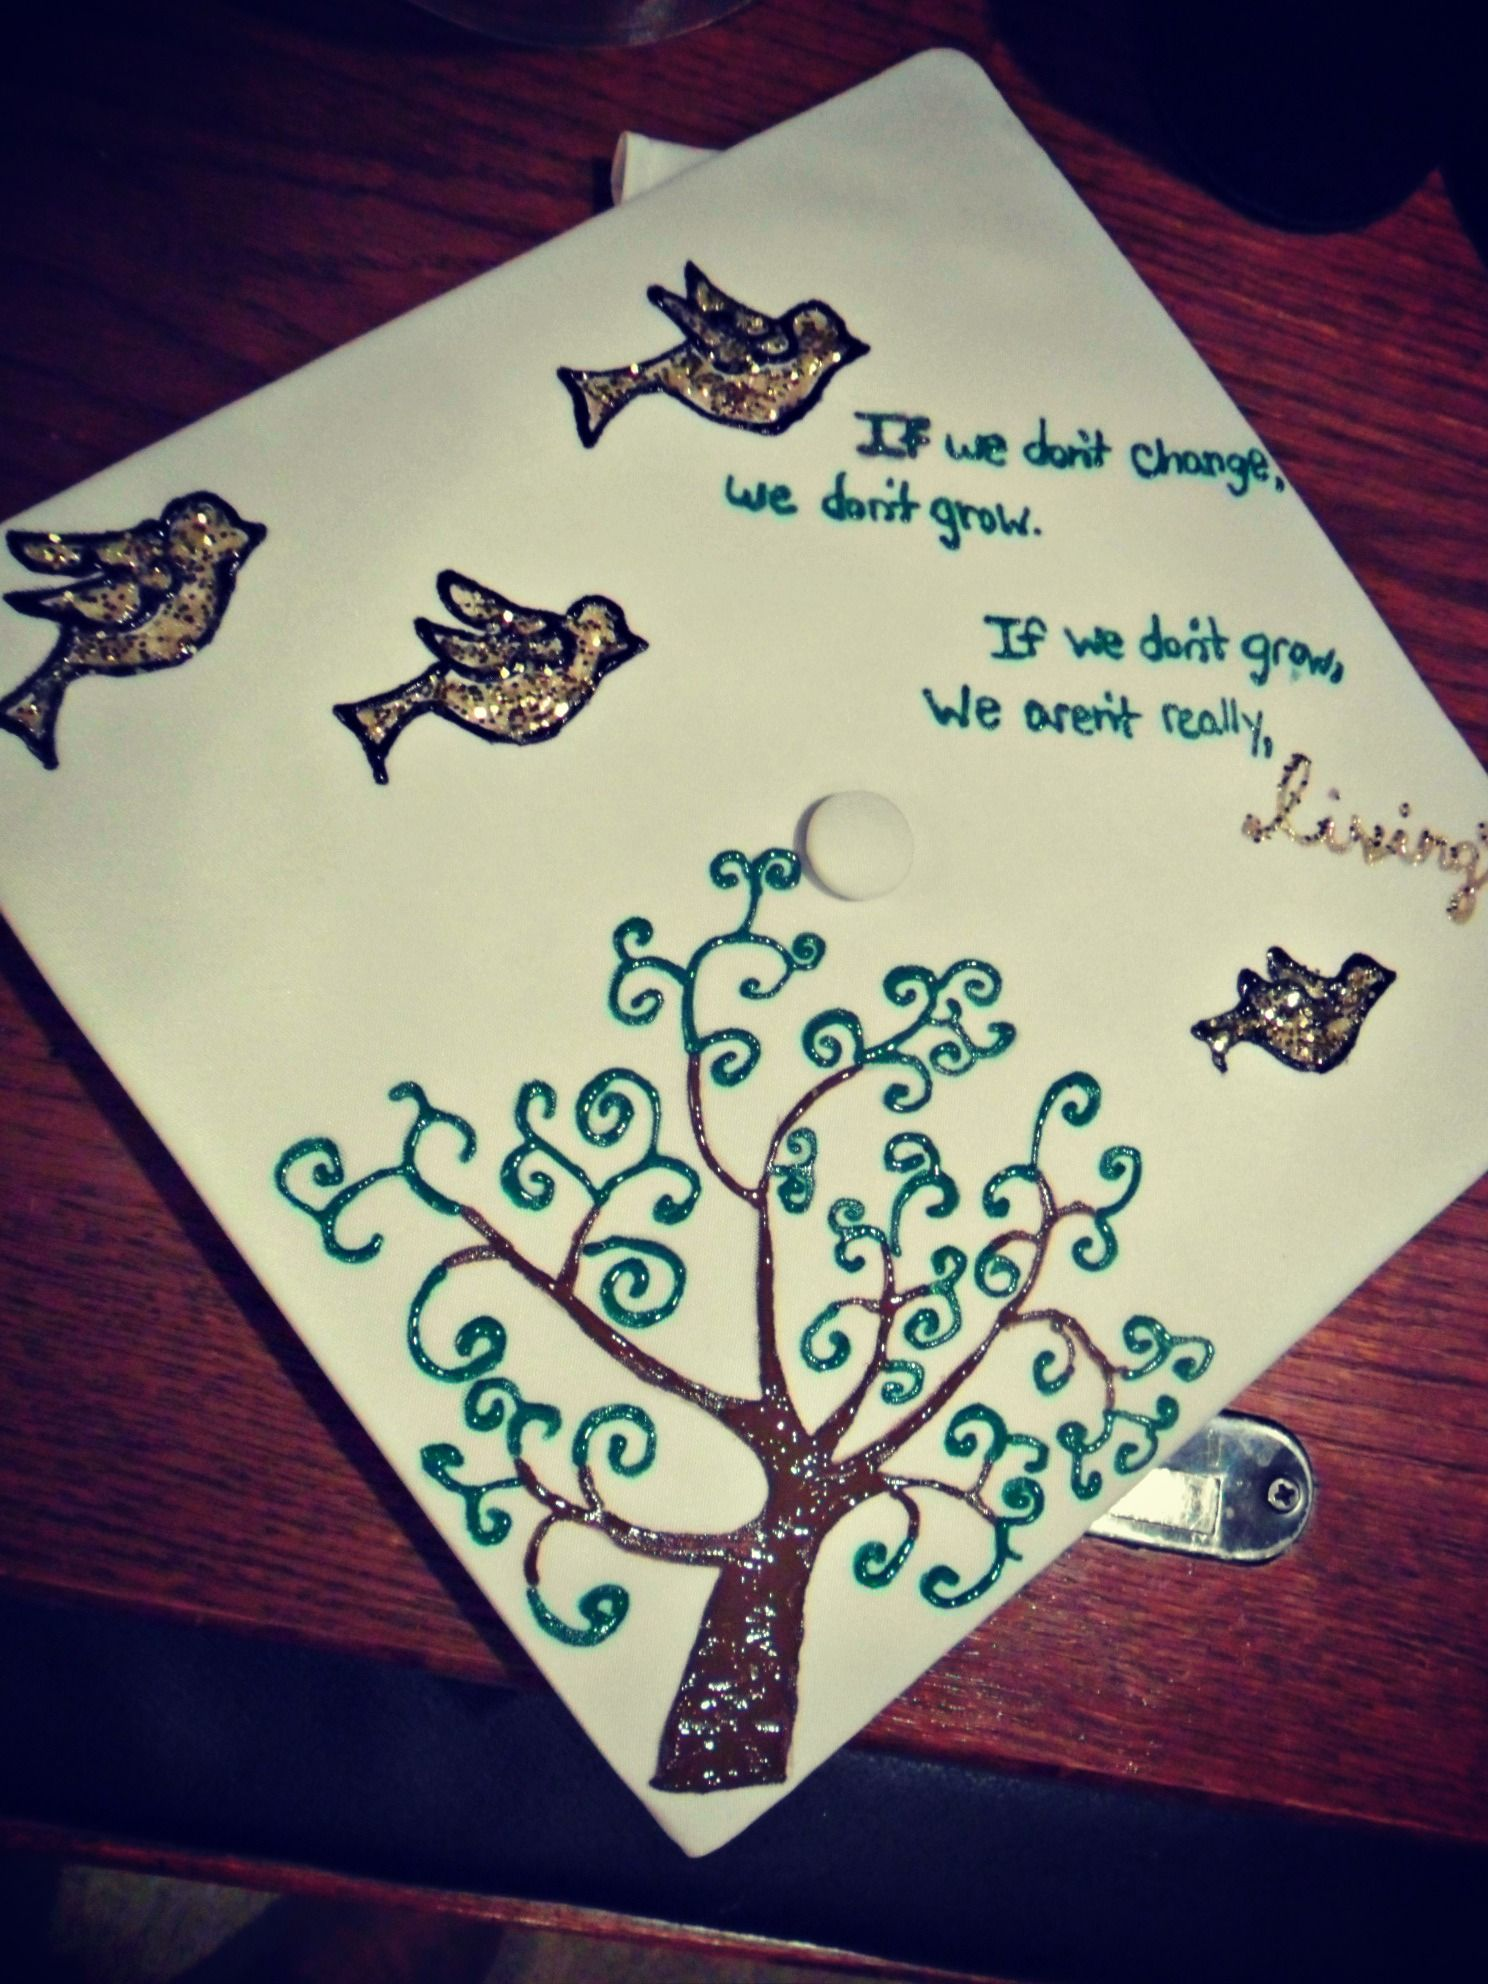 Use Preschool Graduation Cap For High School Graduation Decoration